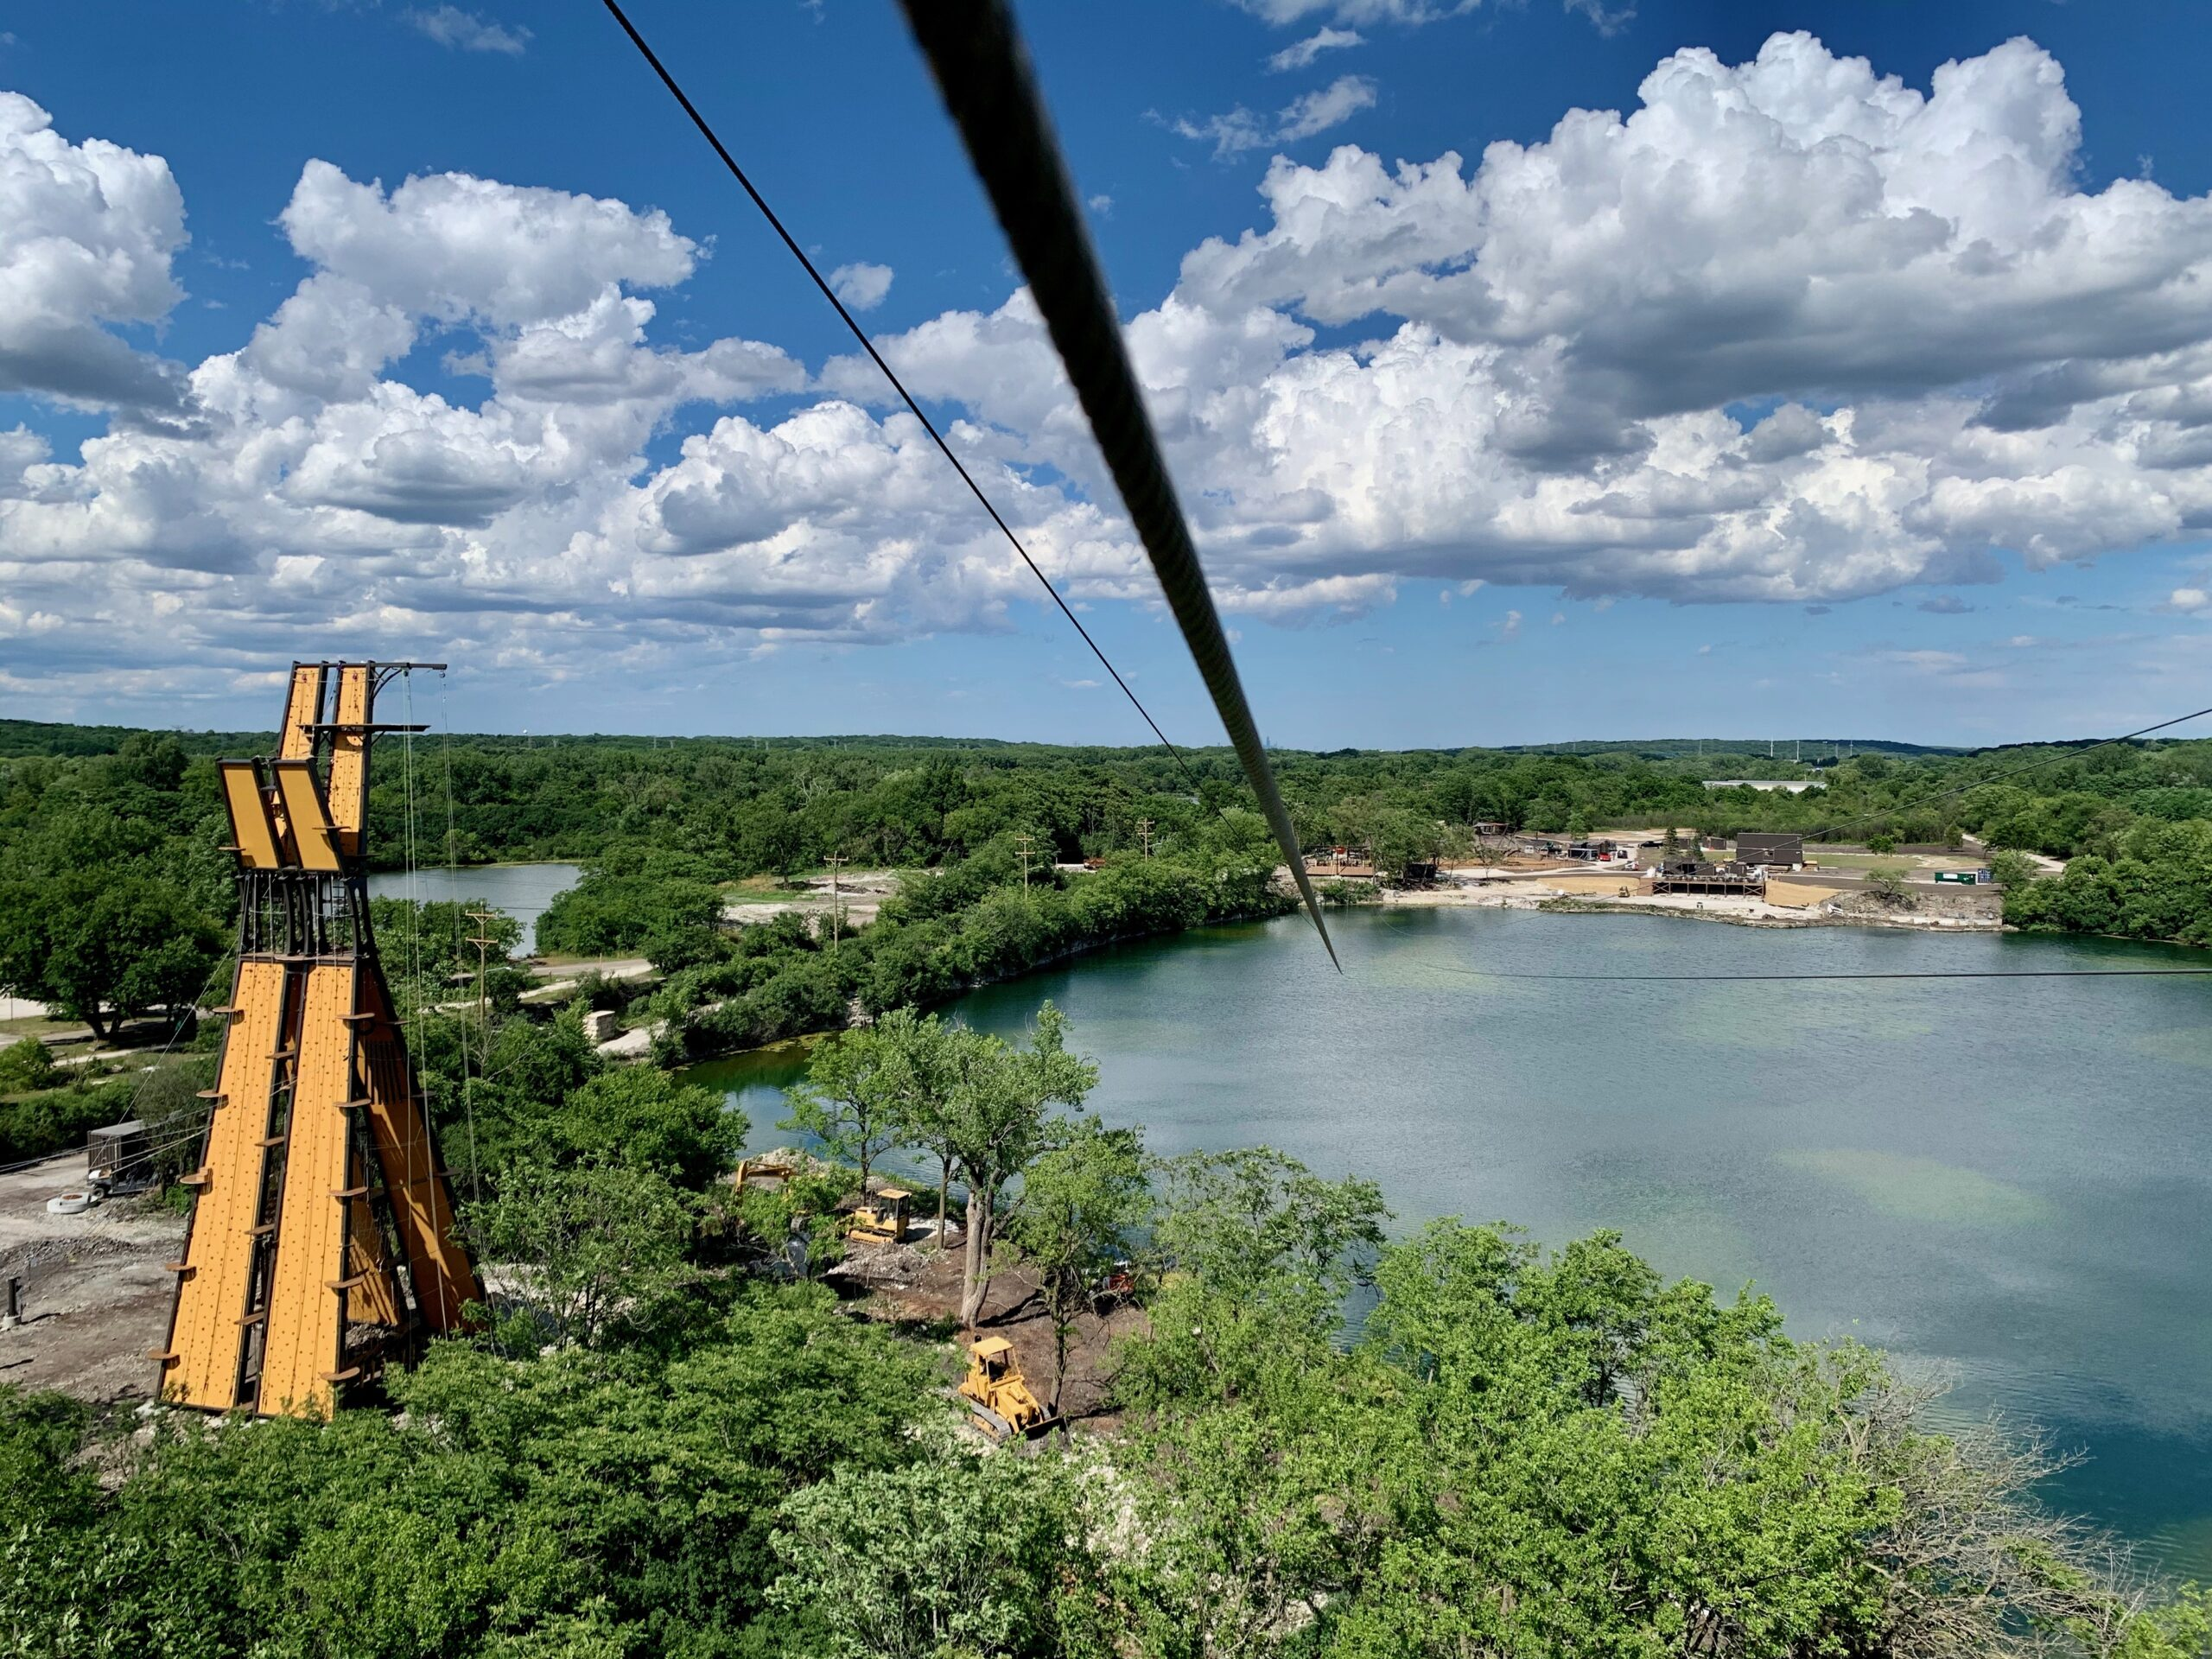 Zipline over a lake at The Forge: Lemont Quarries